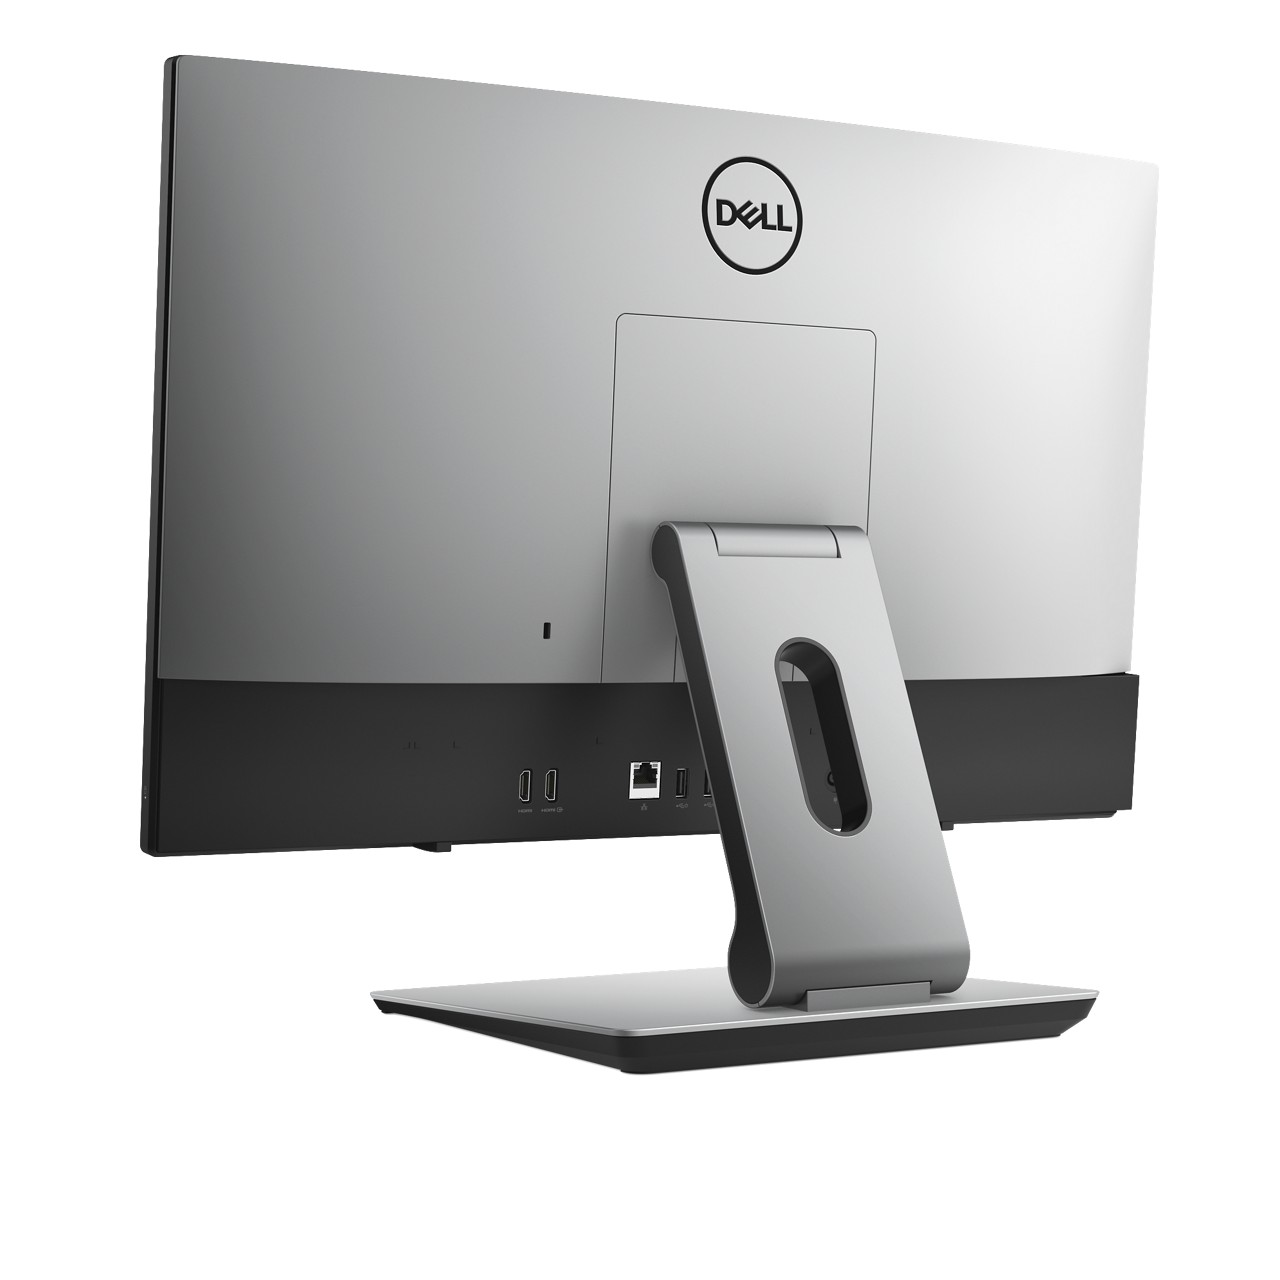 "DELL Inspiron 24 5000 AIO (5477) Touch/ i7-8700T/ 16GB/ 128 SSD+1TB/ 24"" FHD dot/ NV GTX 1050 4GB/ WiFi/ W10/ 2YNBD"